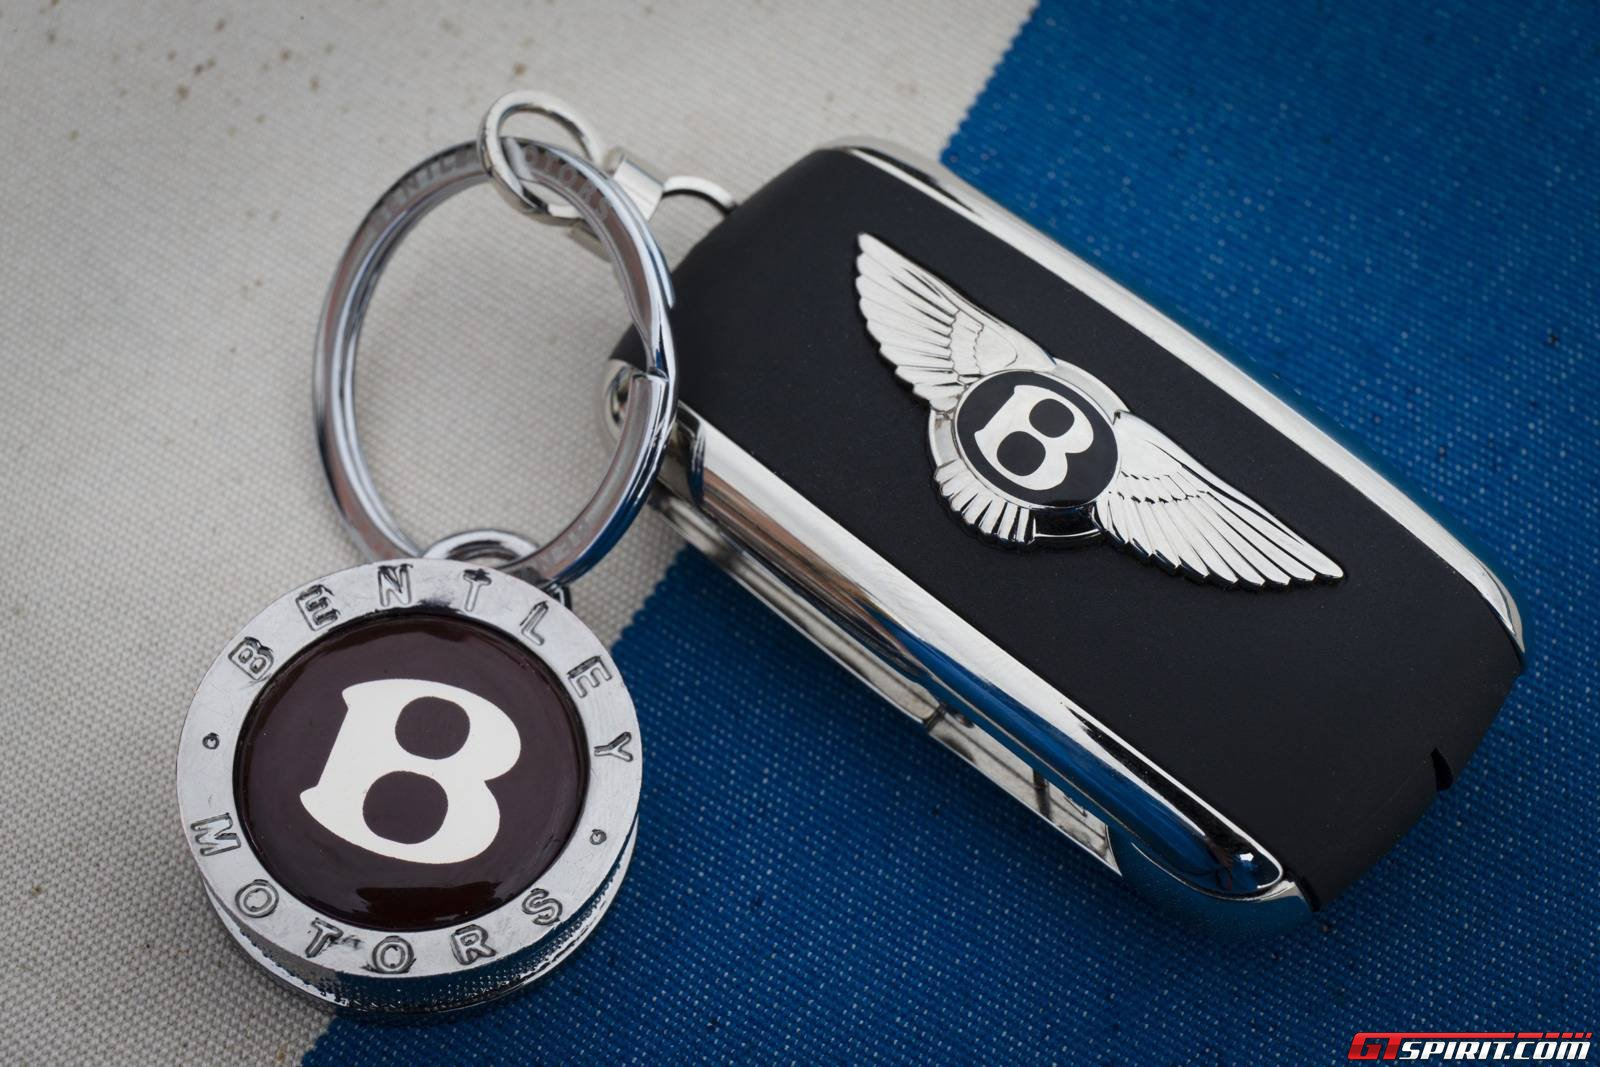 Bentley Key Pictures to Pin on Pinterest - PinsDaddy